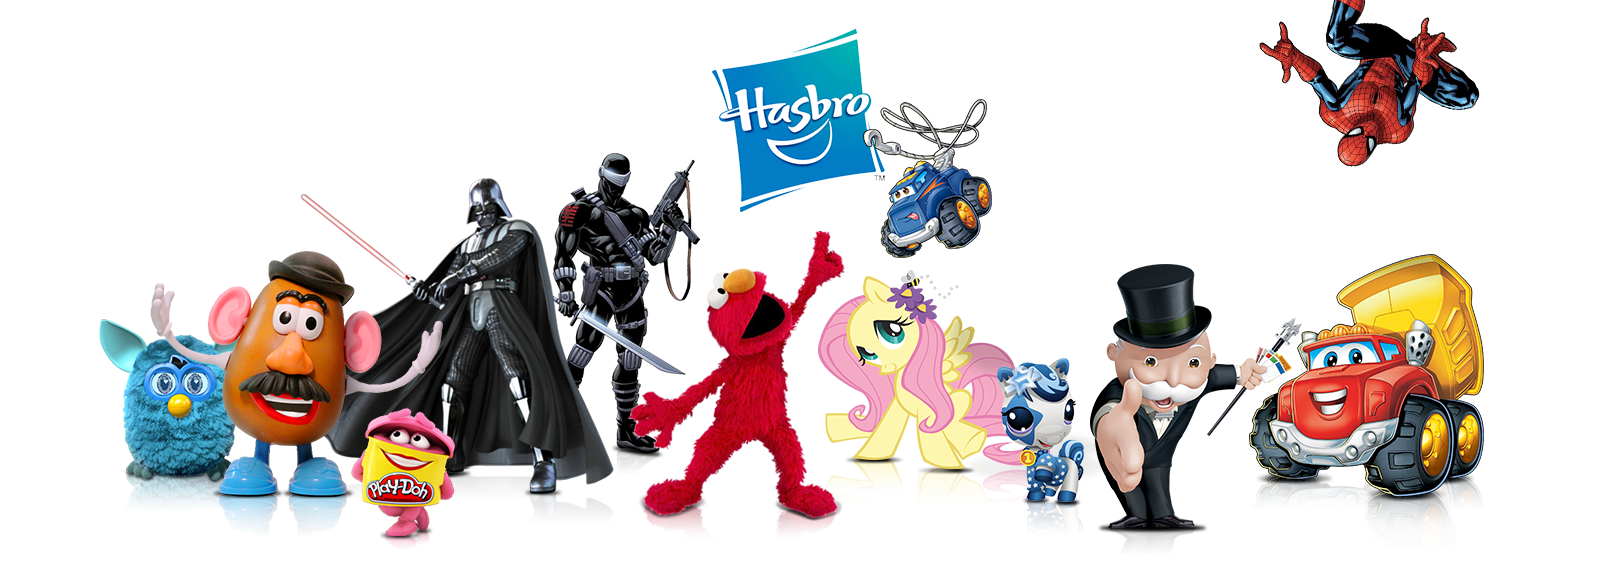 ���� �������. ������� �*�*�! Hasbro (Play Doh, Playskool, My Little Pony , ��������� � ��. �������). ��������� ������ Mattel, ����������� ������� ������. ������������� ZanZoon. ���� ����������. �������� ������ ����������� � �����! �������.